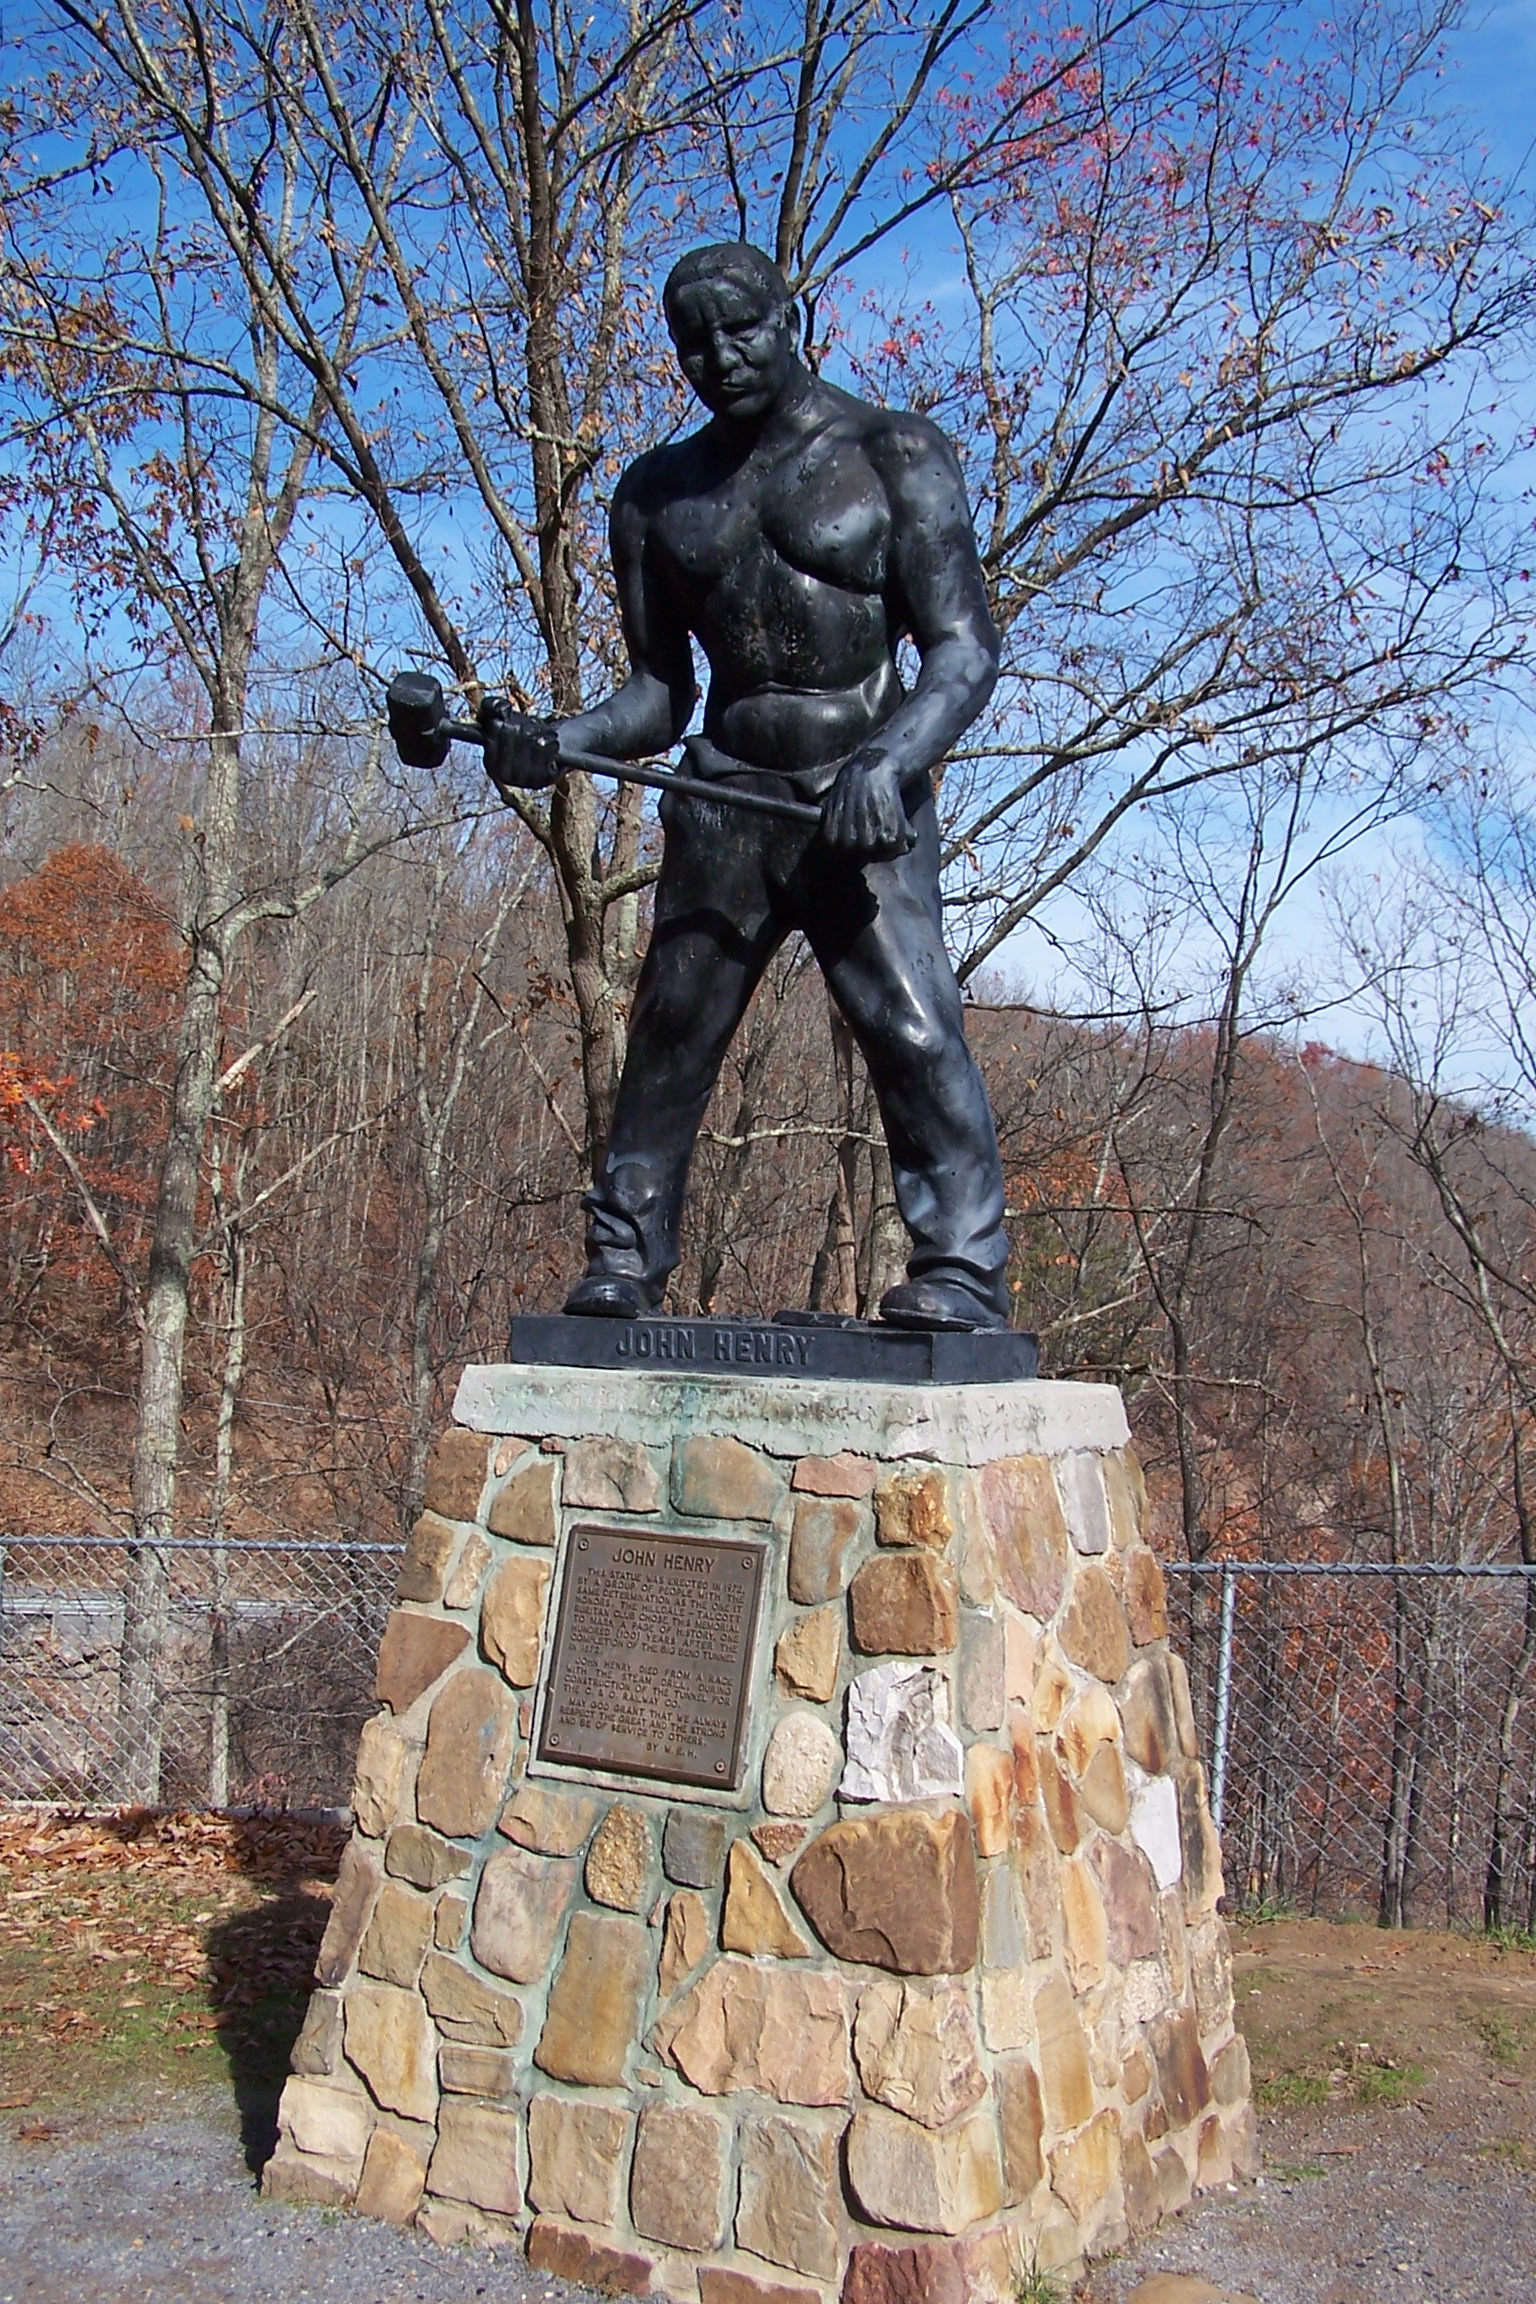 John Henry Statue in Talcott, West Virginia